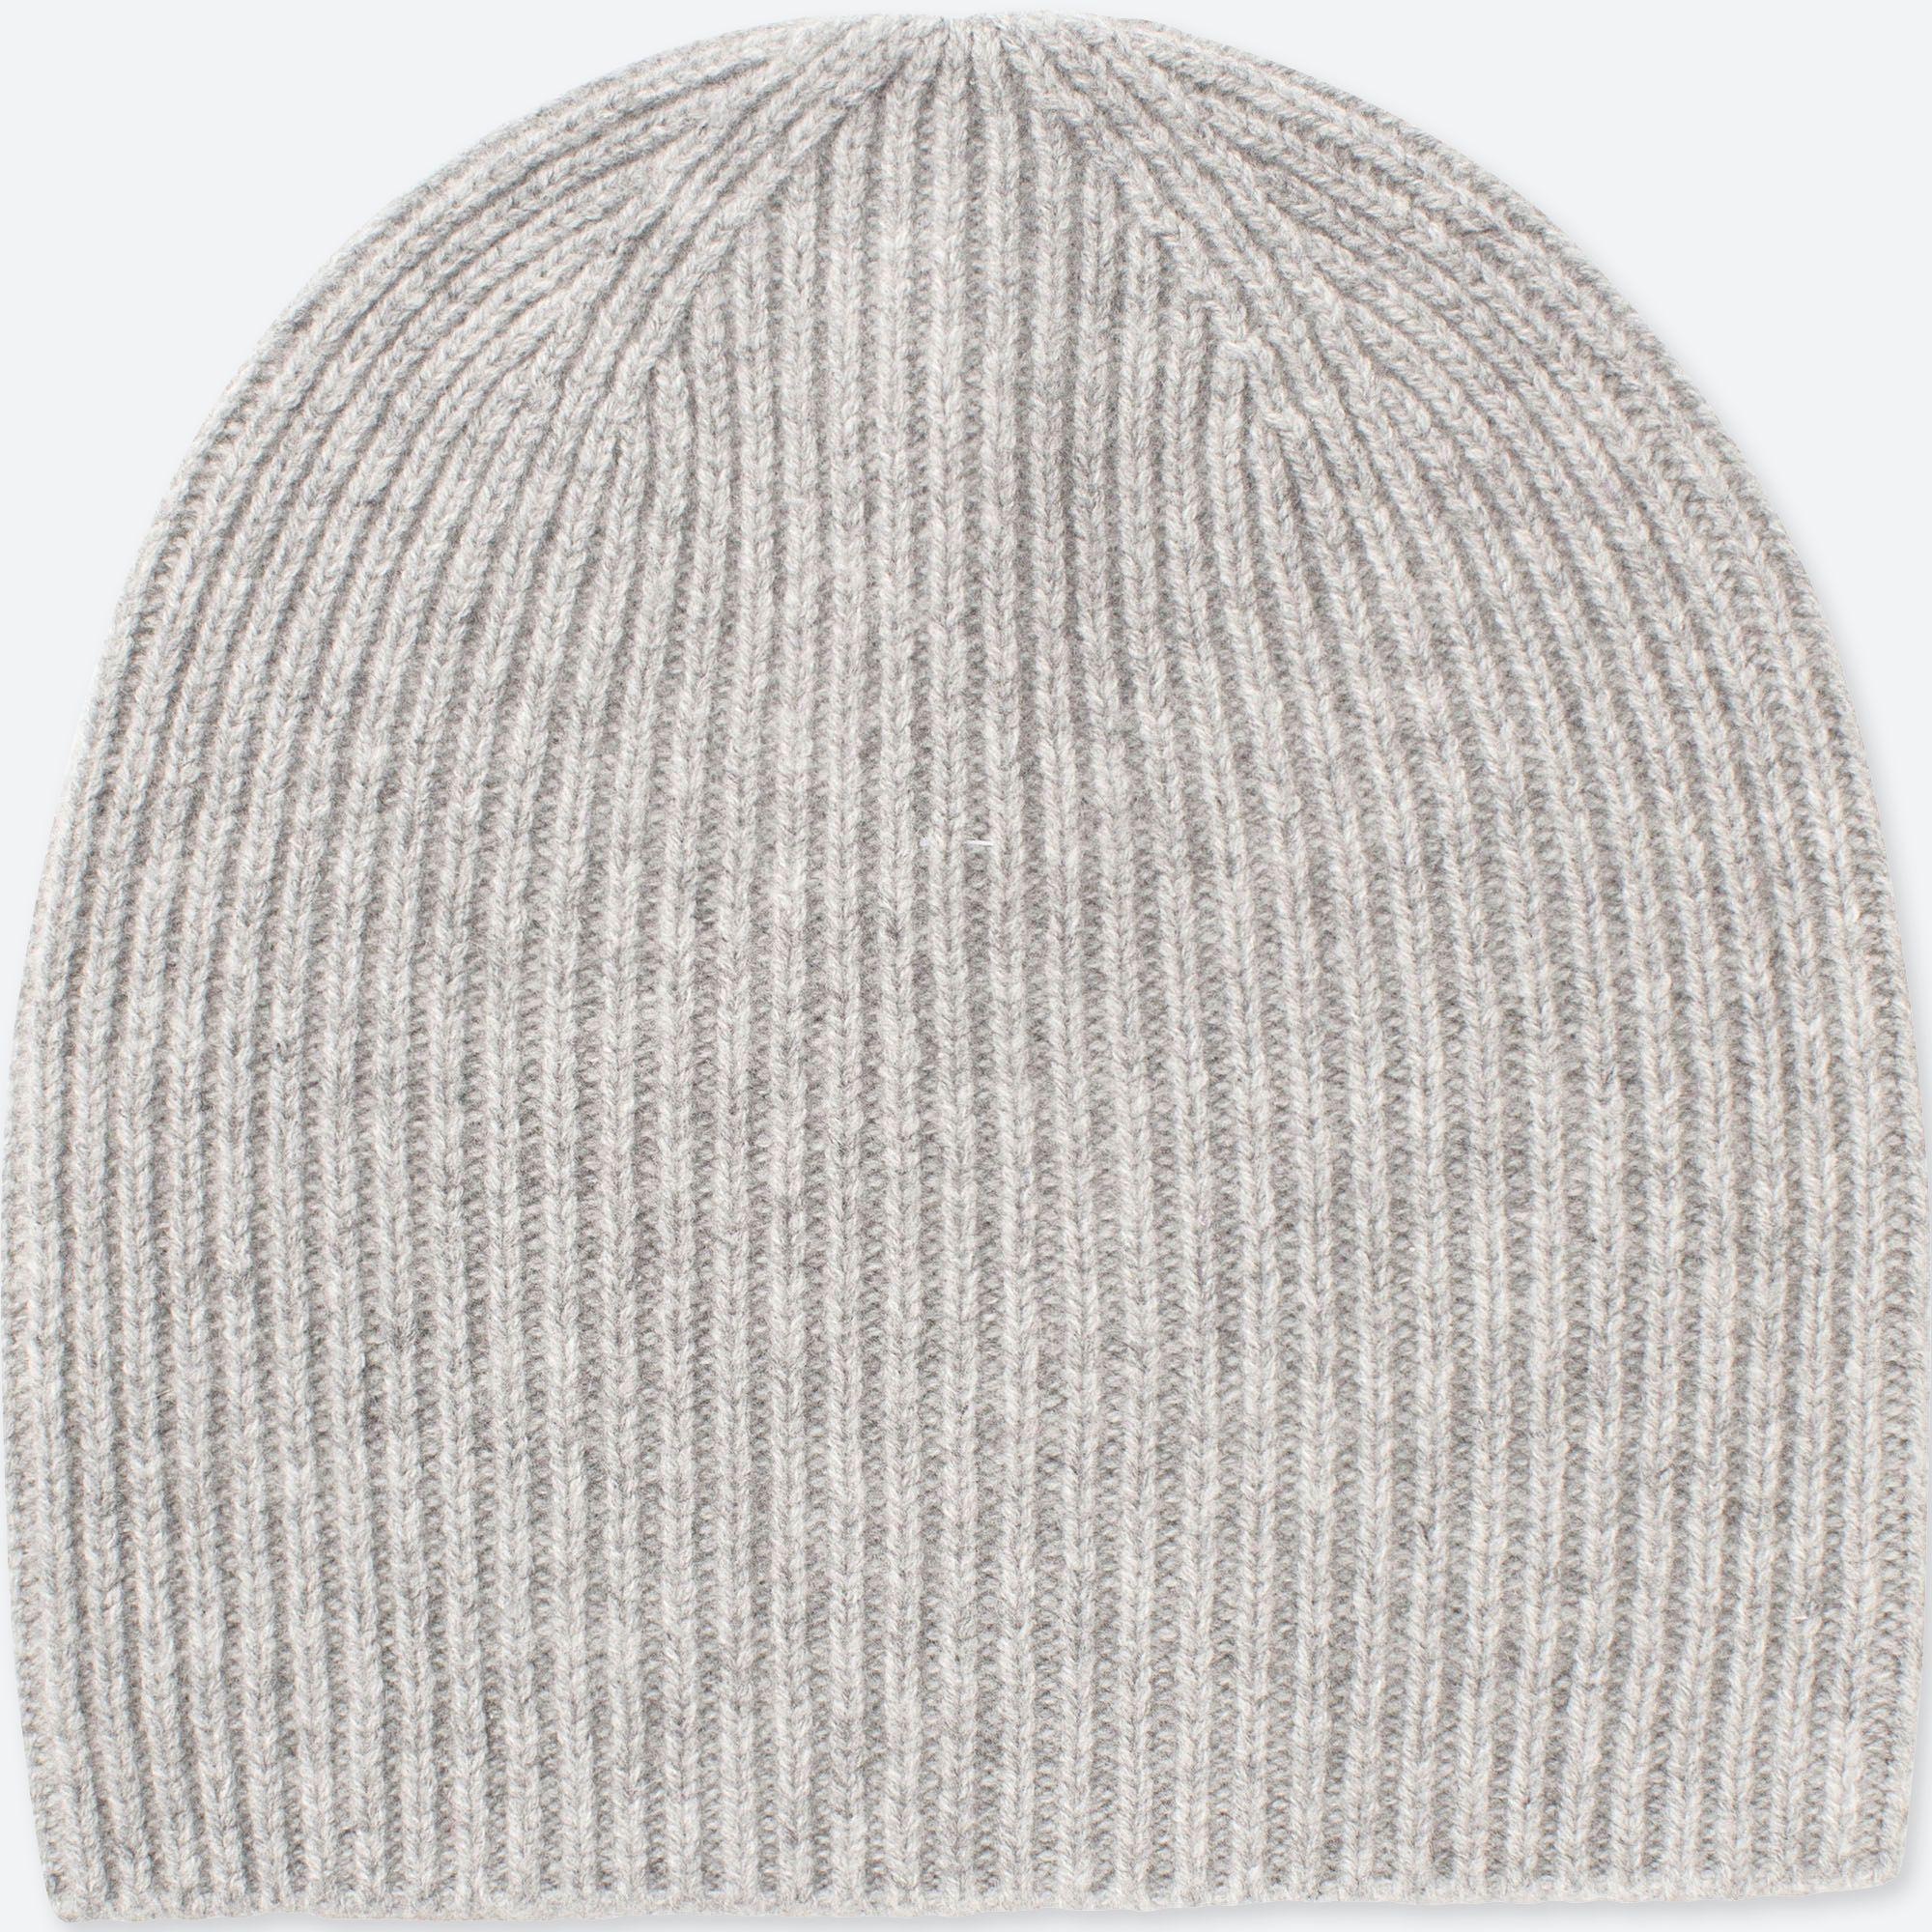 Uniqlo Cashmere Knitted Beanie Hat in Gray - Lyst 20969dcaf67a